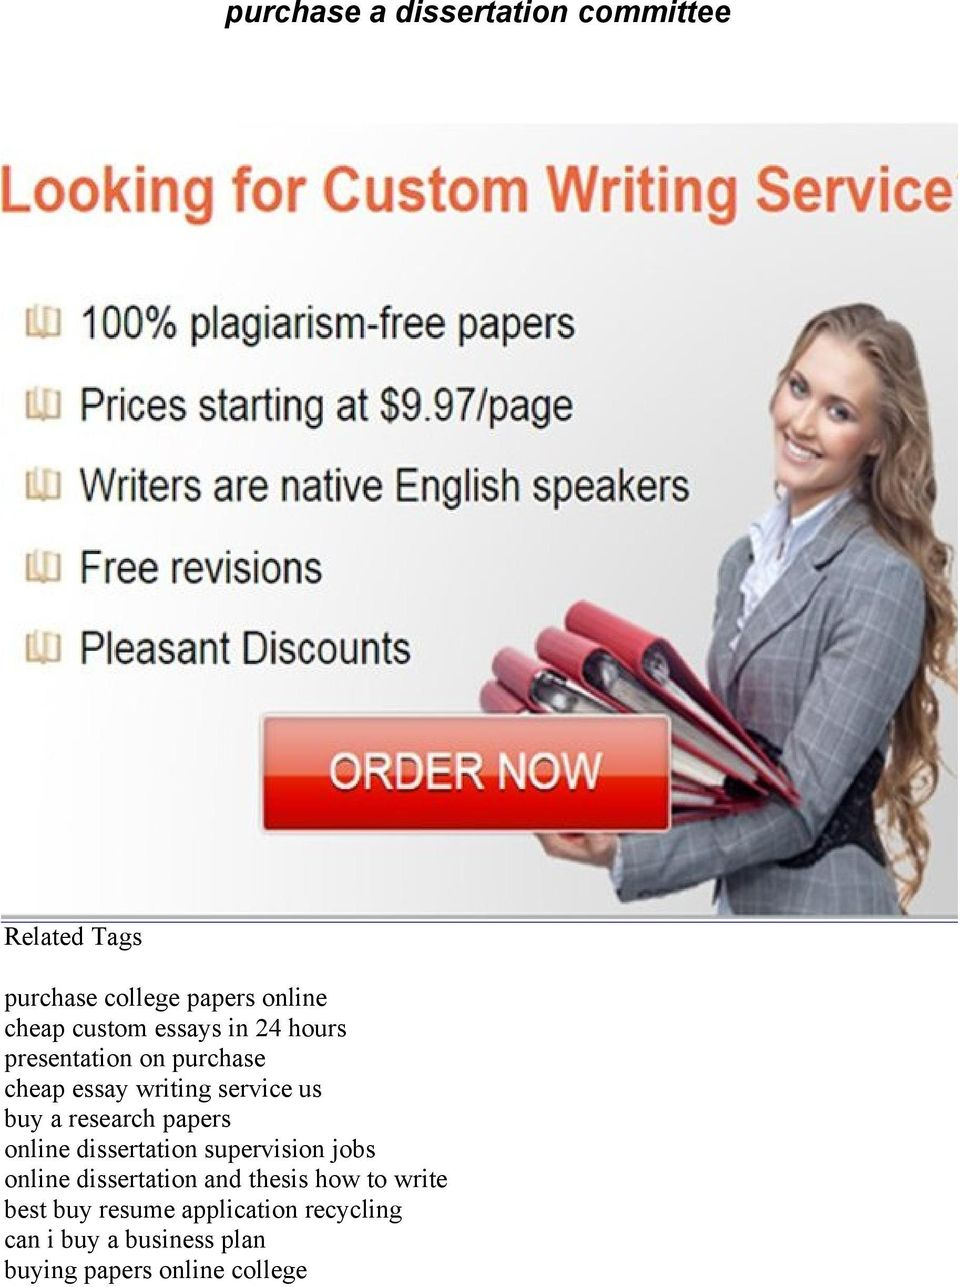 papers online dissertation supervision jobs online dissertation and thesis how to write